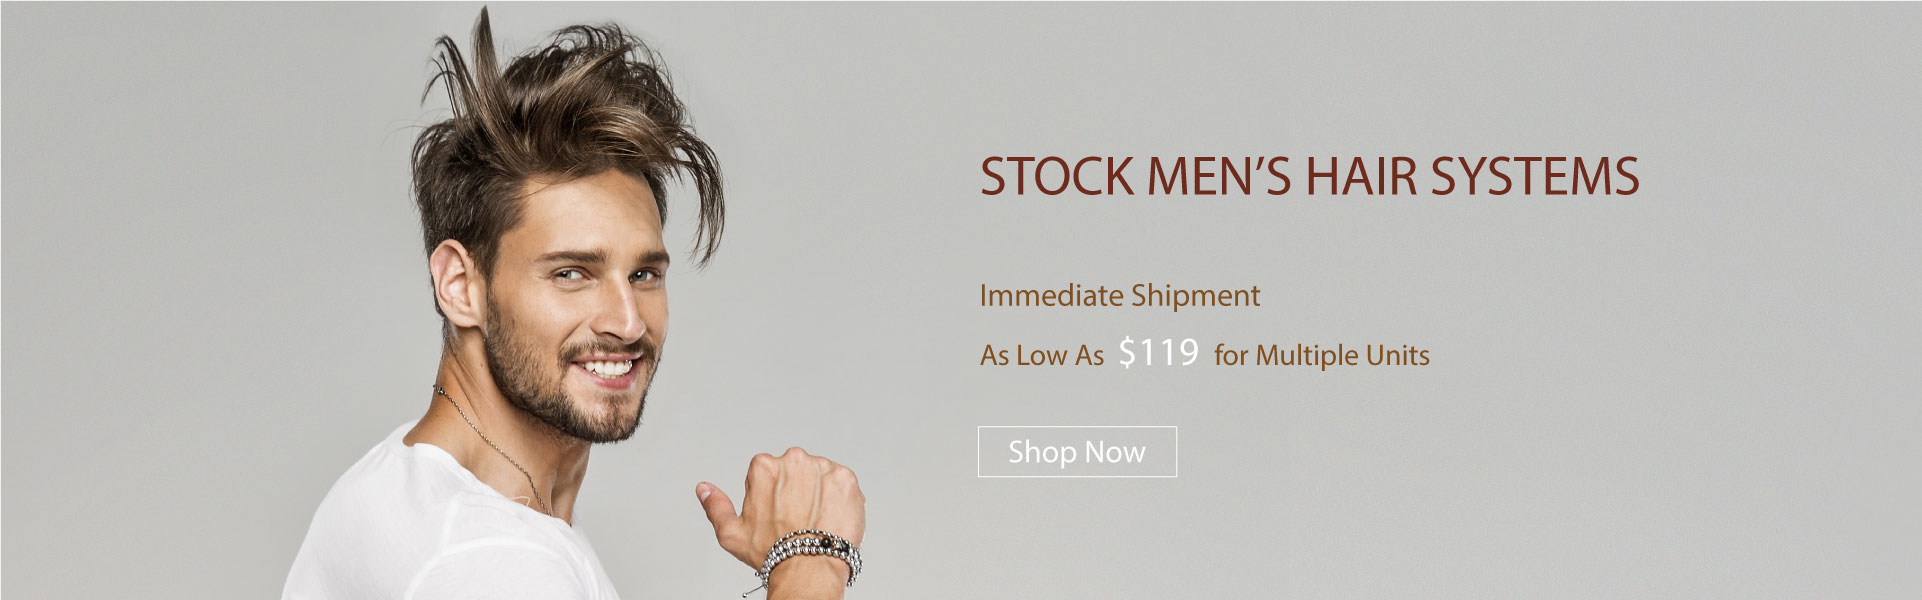 stock men's hair systems